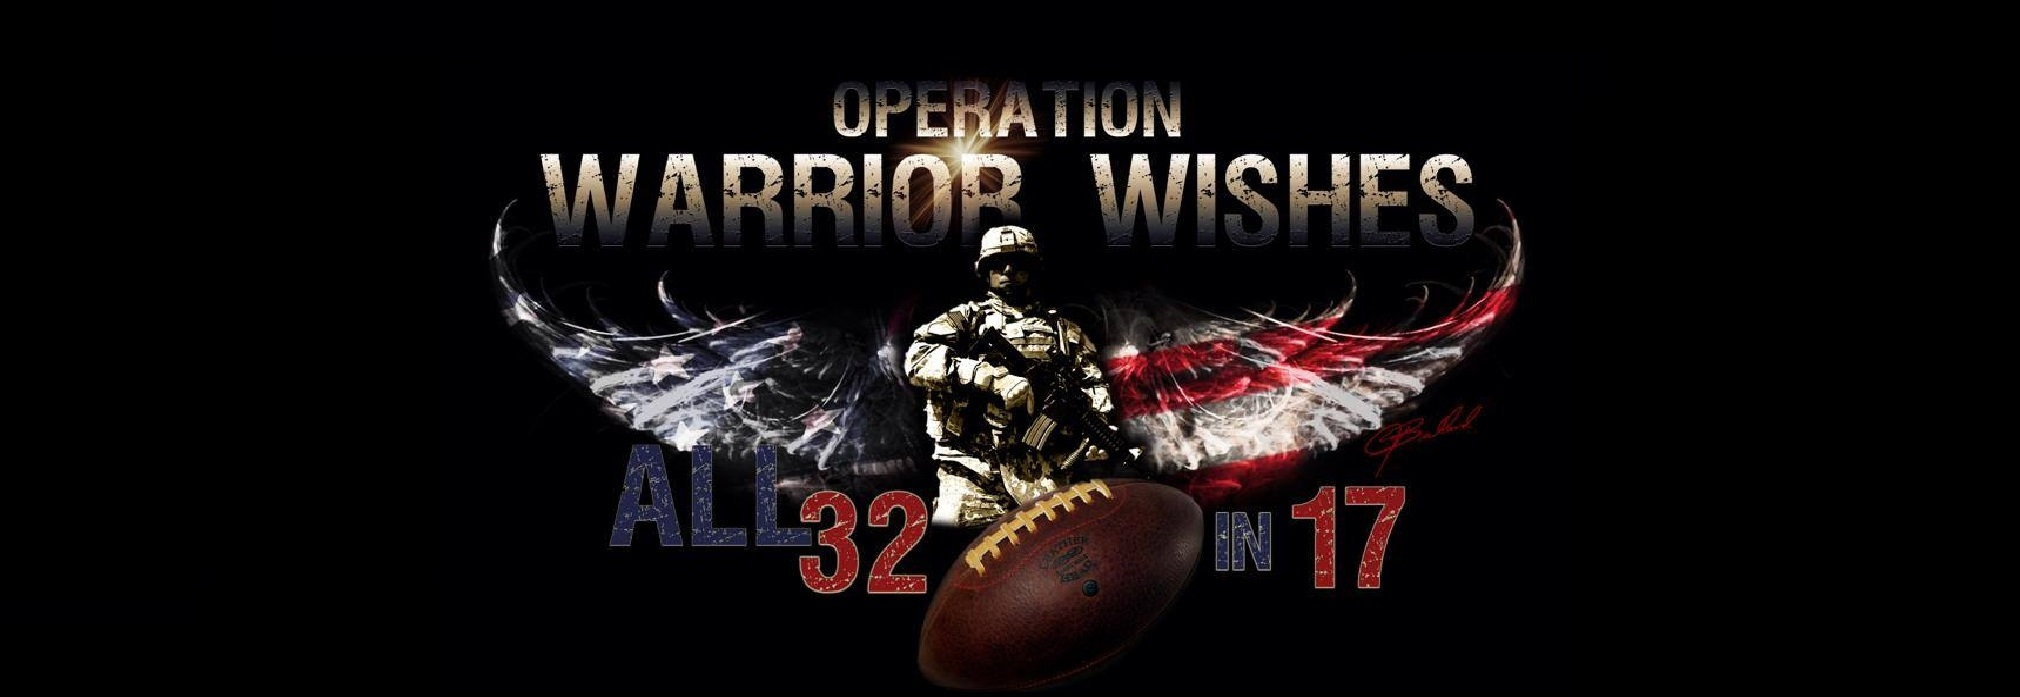 Game 29 – Making Warrior Wishes Come True & Honoring 9/11 First Responders In New York!